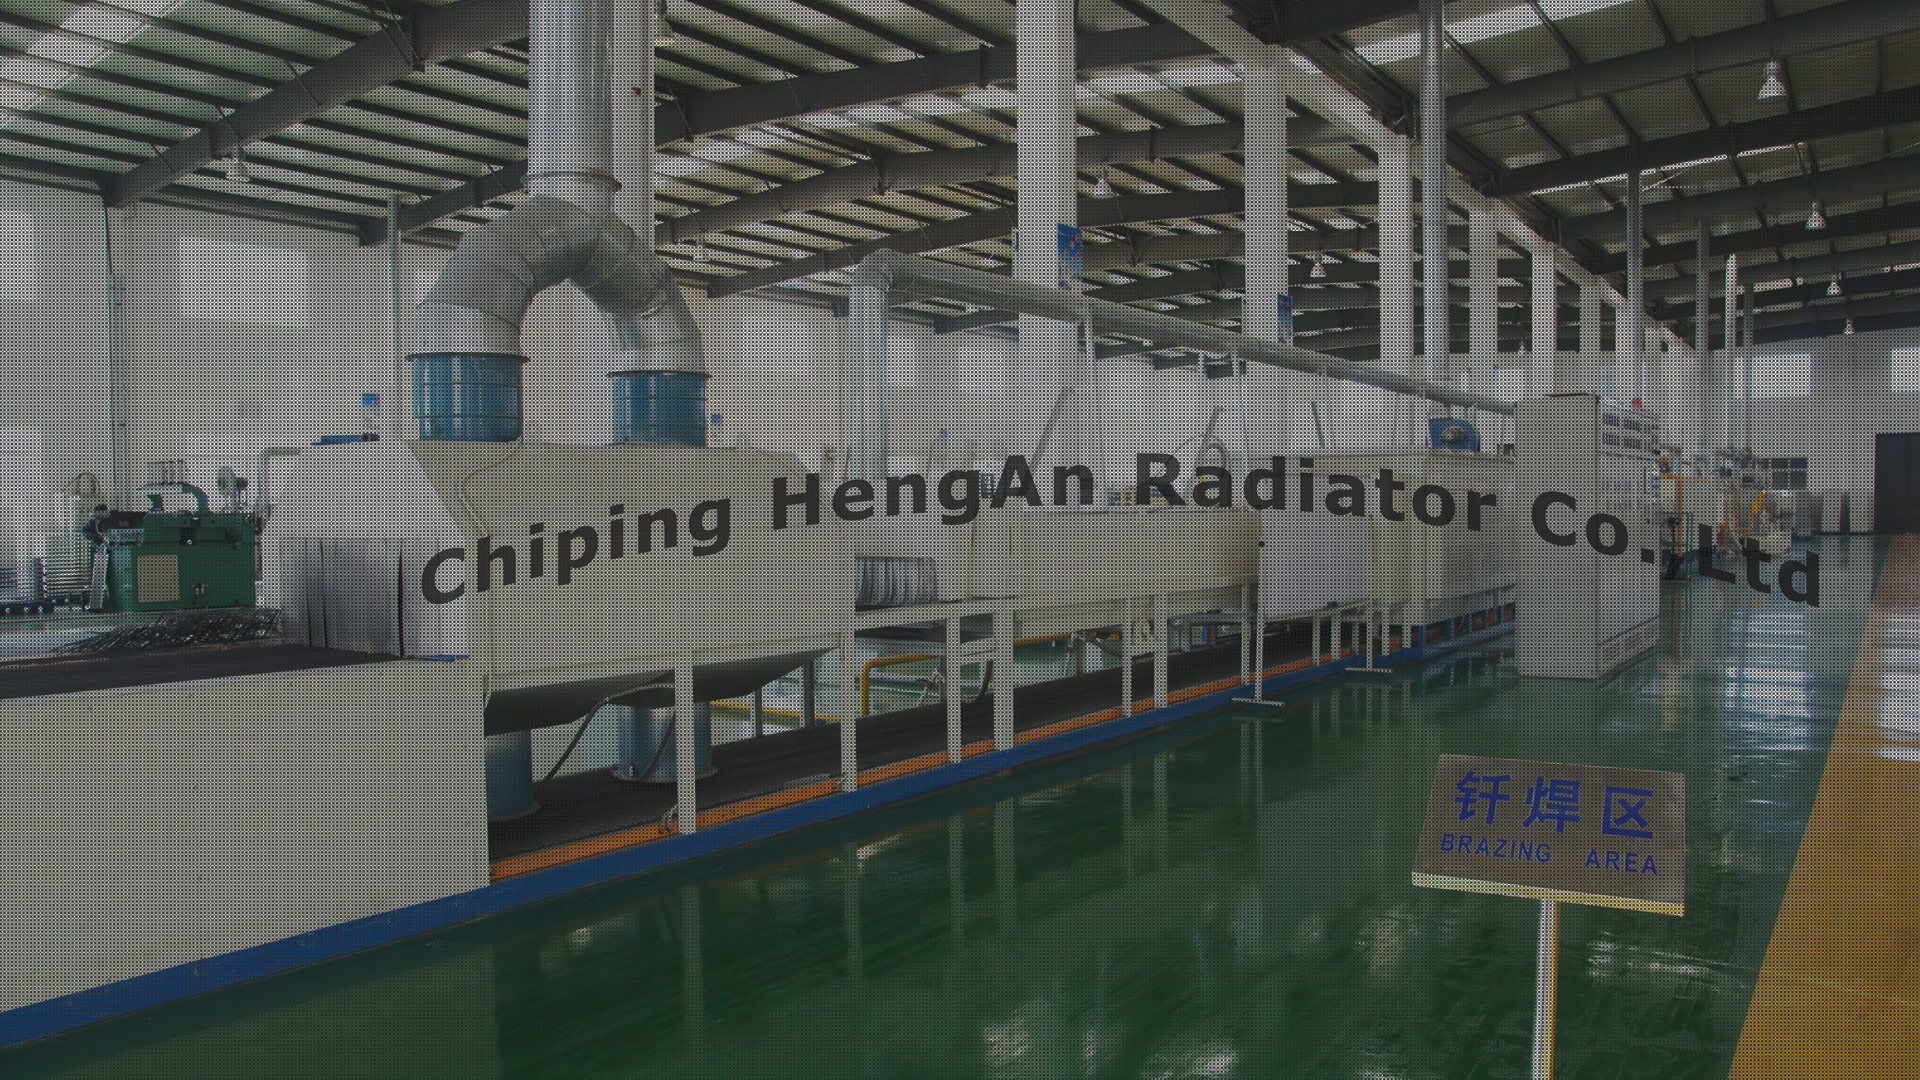 Chiping HengAn Radiator Co.,Ltd